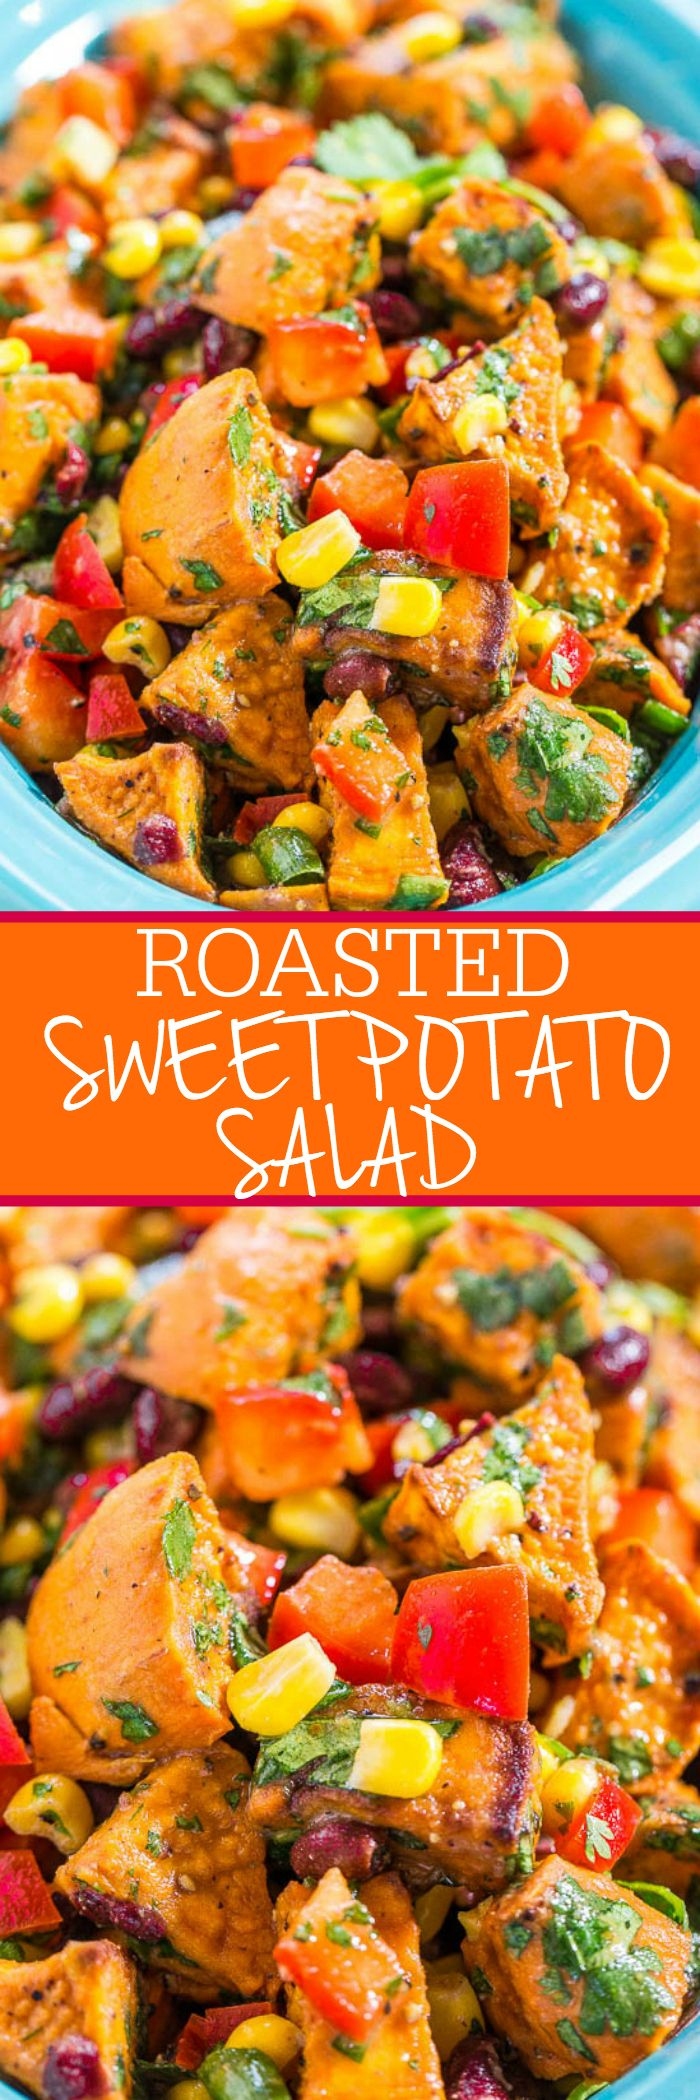 Roasted Sweet Potato Salad - Goodbye mayo-loaded, mushy, boring potato salad. Hello to a Mexican-inspired potato salad full of flavor and texture with corn, black beans, peppers, and cilantro!!